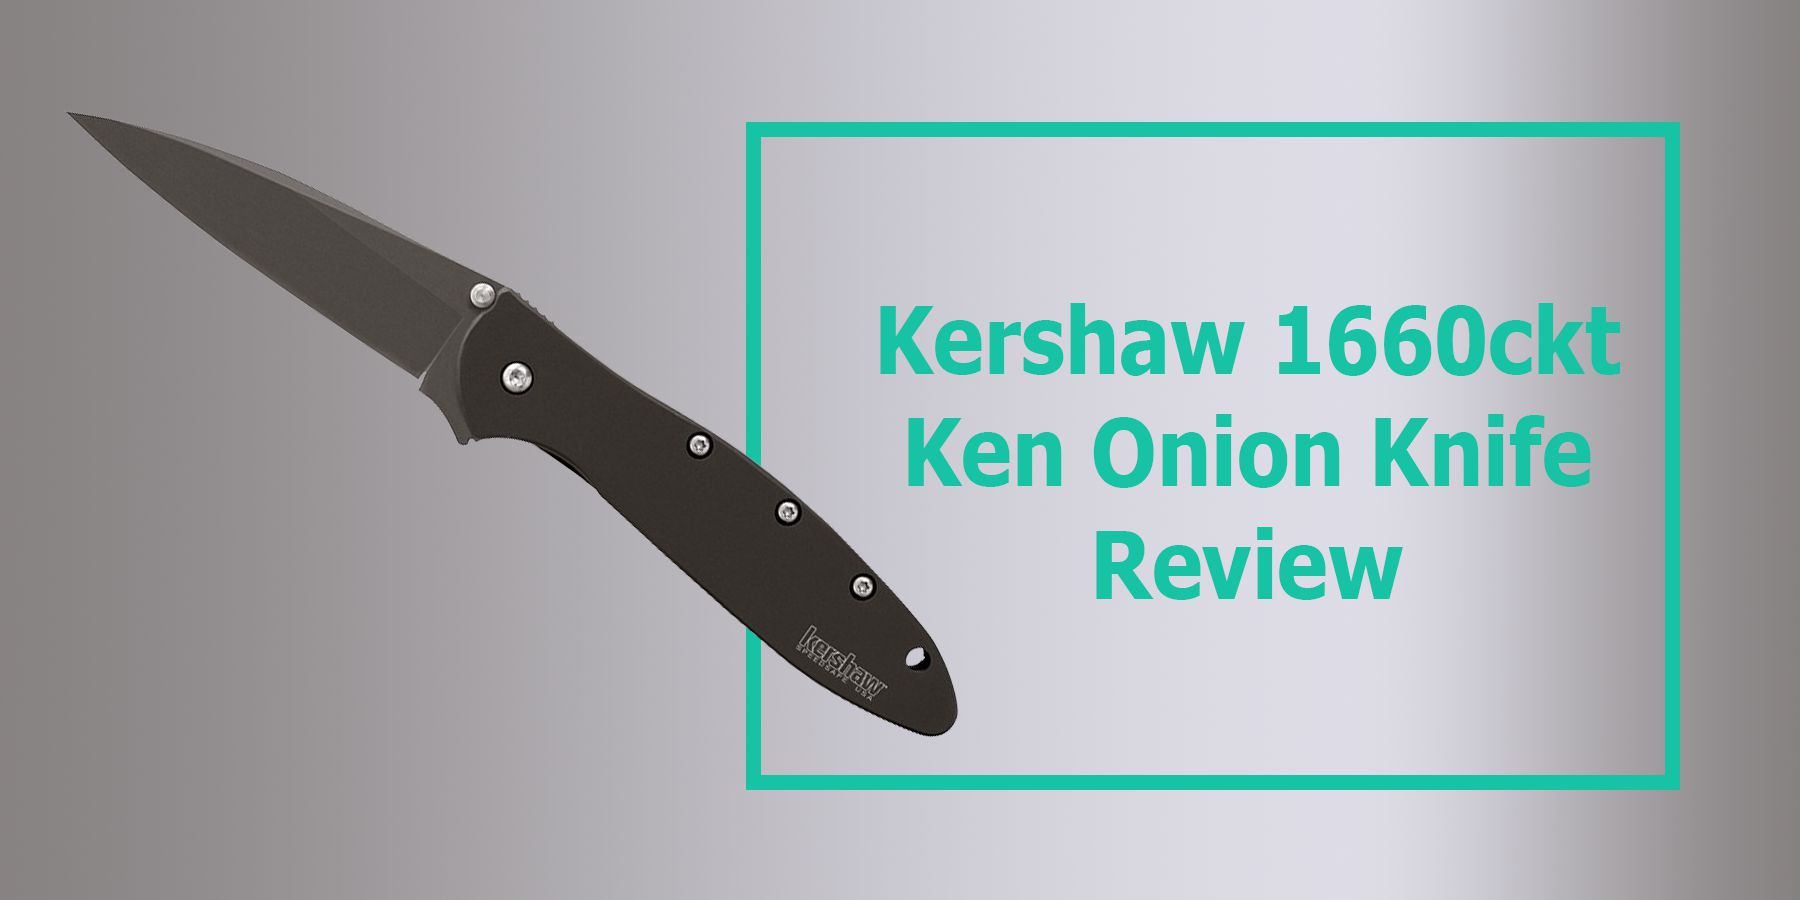 Kershaw 1660ckt Ken Onion Review - Leek Folding Knife